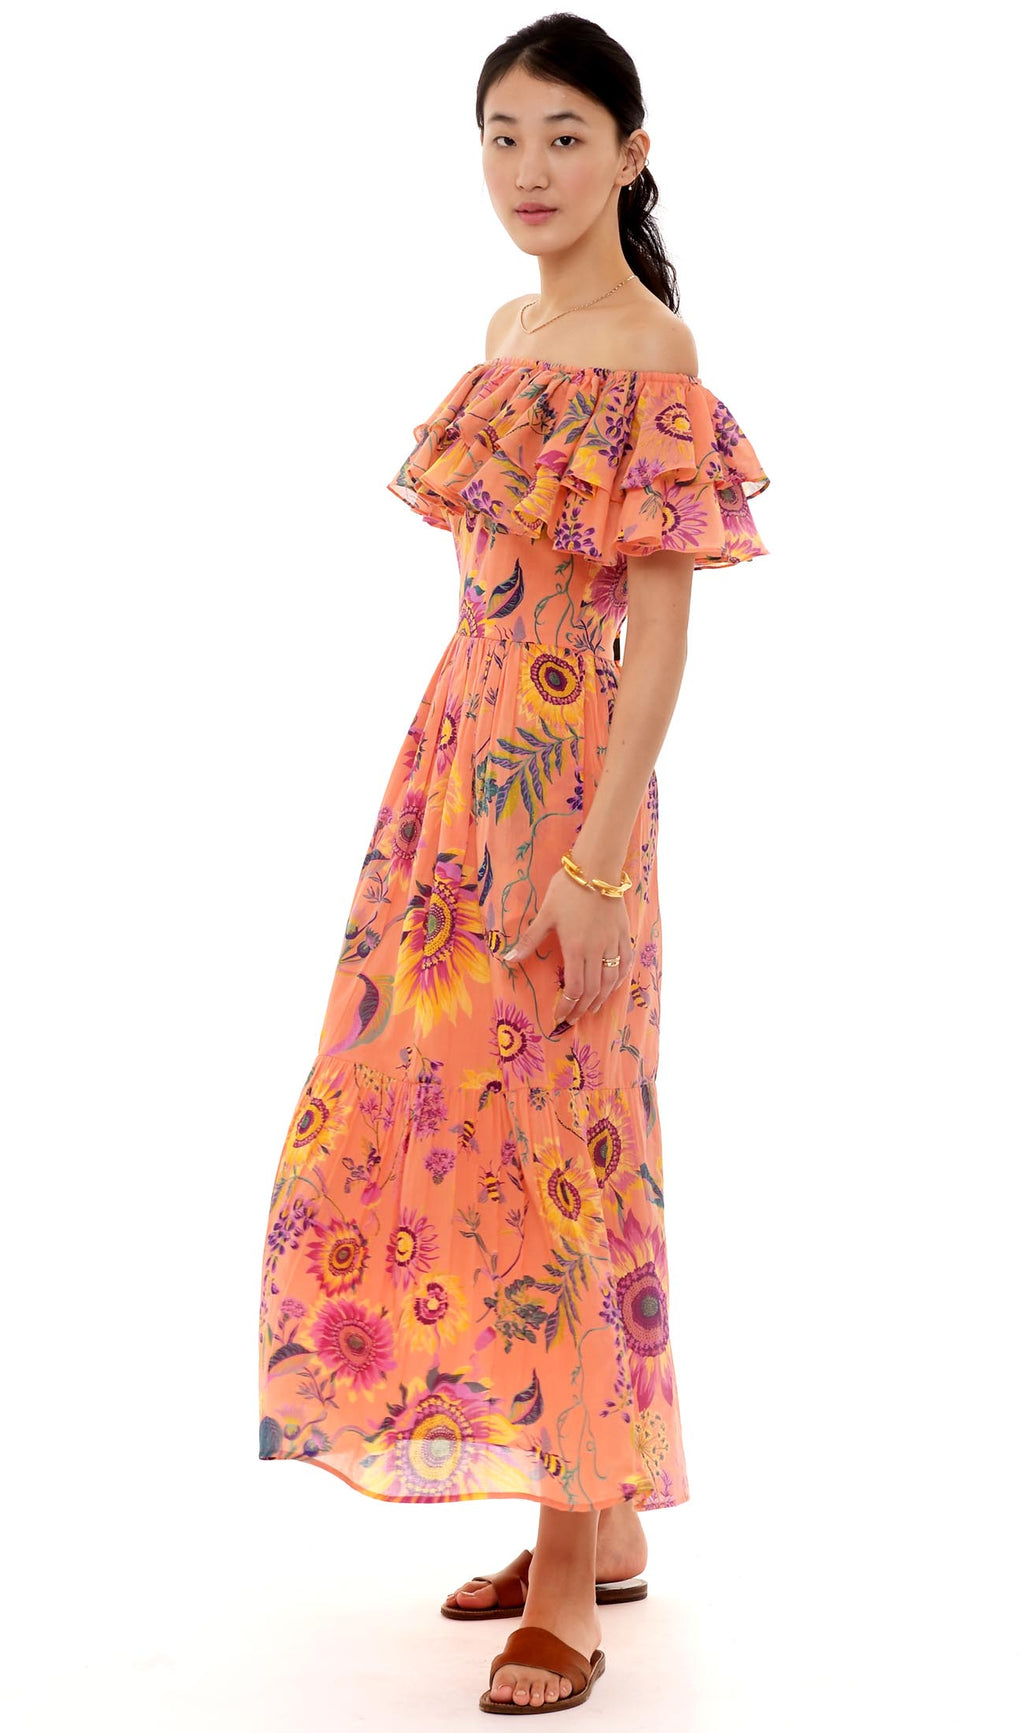 Pricilla Dress, Mid-Summer Bumble Living Coral, Pure Organic Cotton Voile